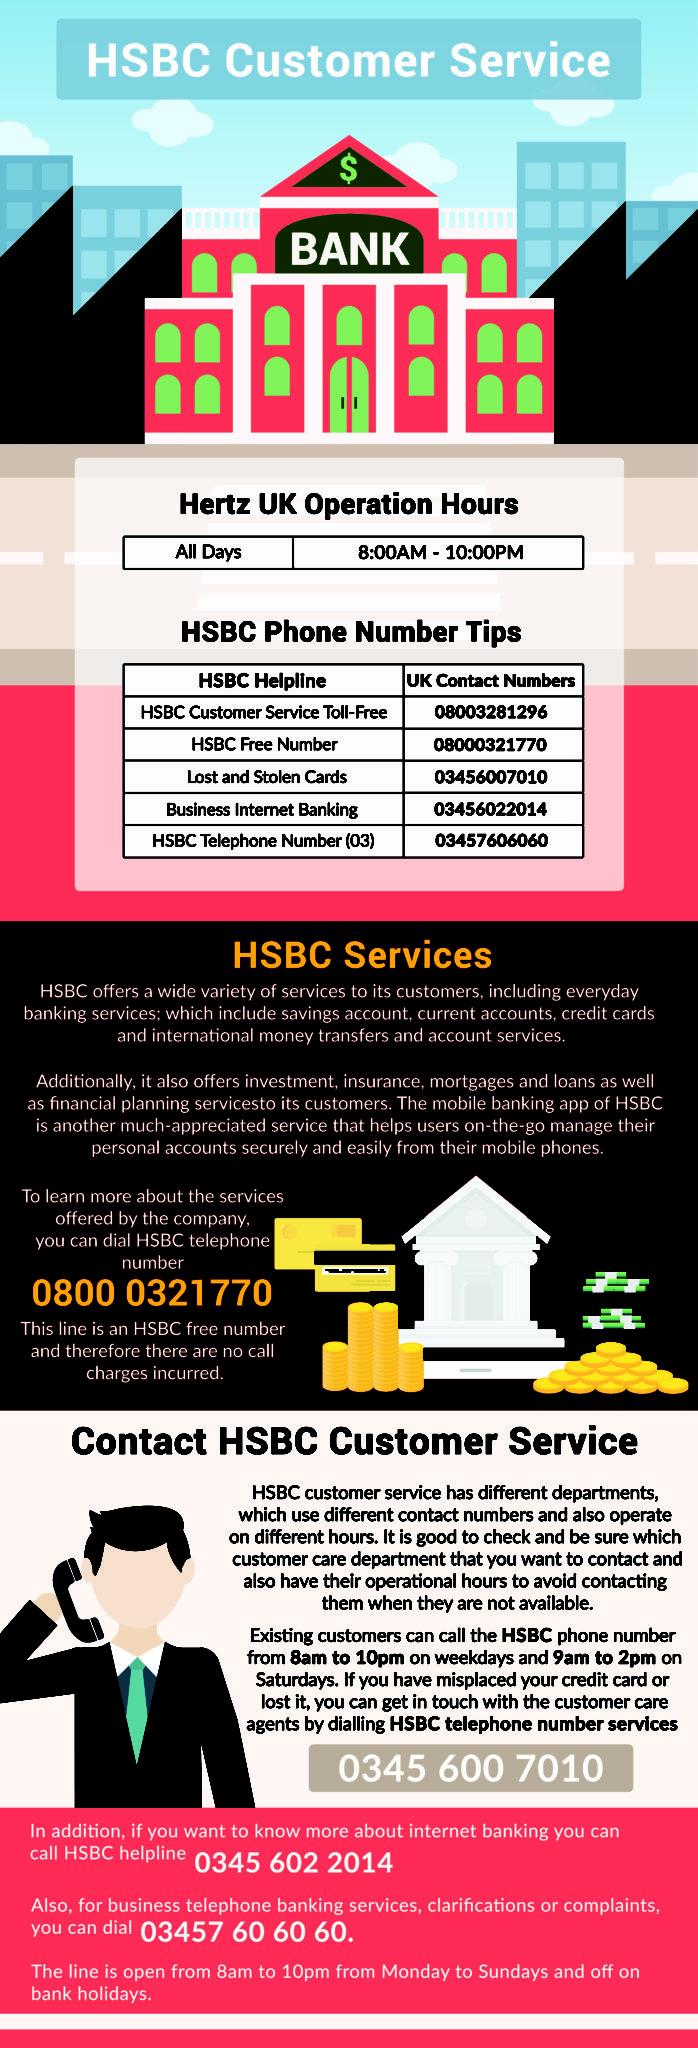 HSBC Customer Service Contact Phone Number